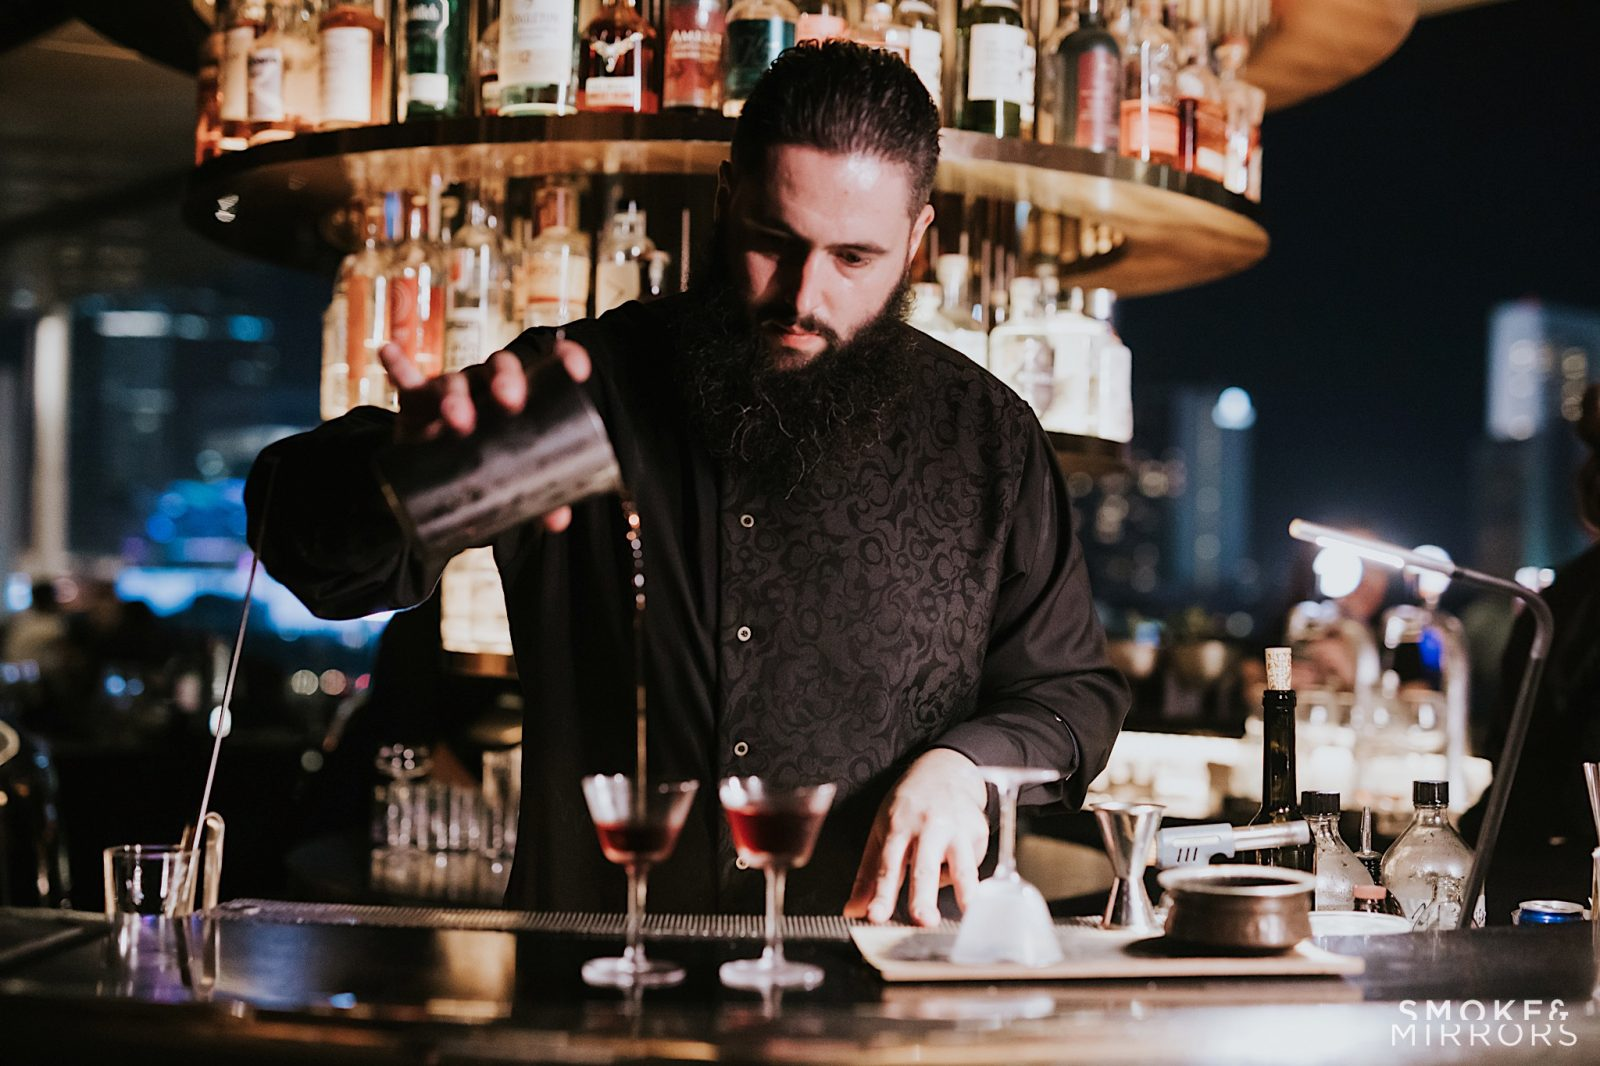 Head Bartender of Smoke & Mirrors, Jorge A. Conde